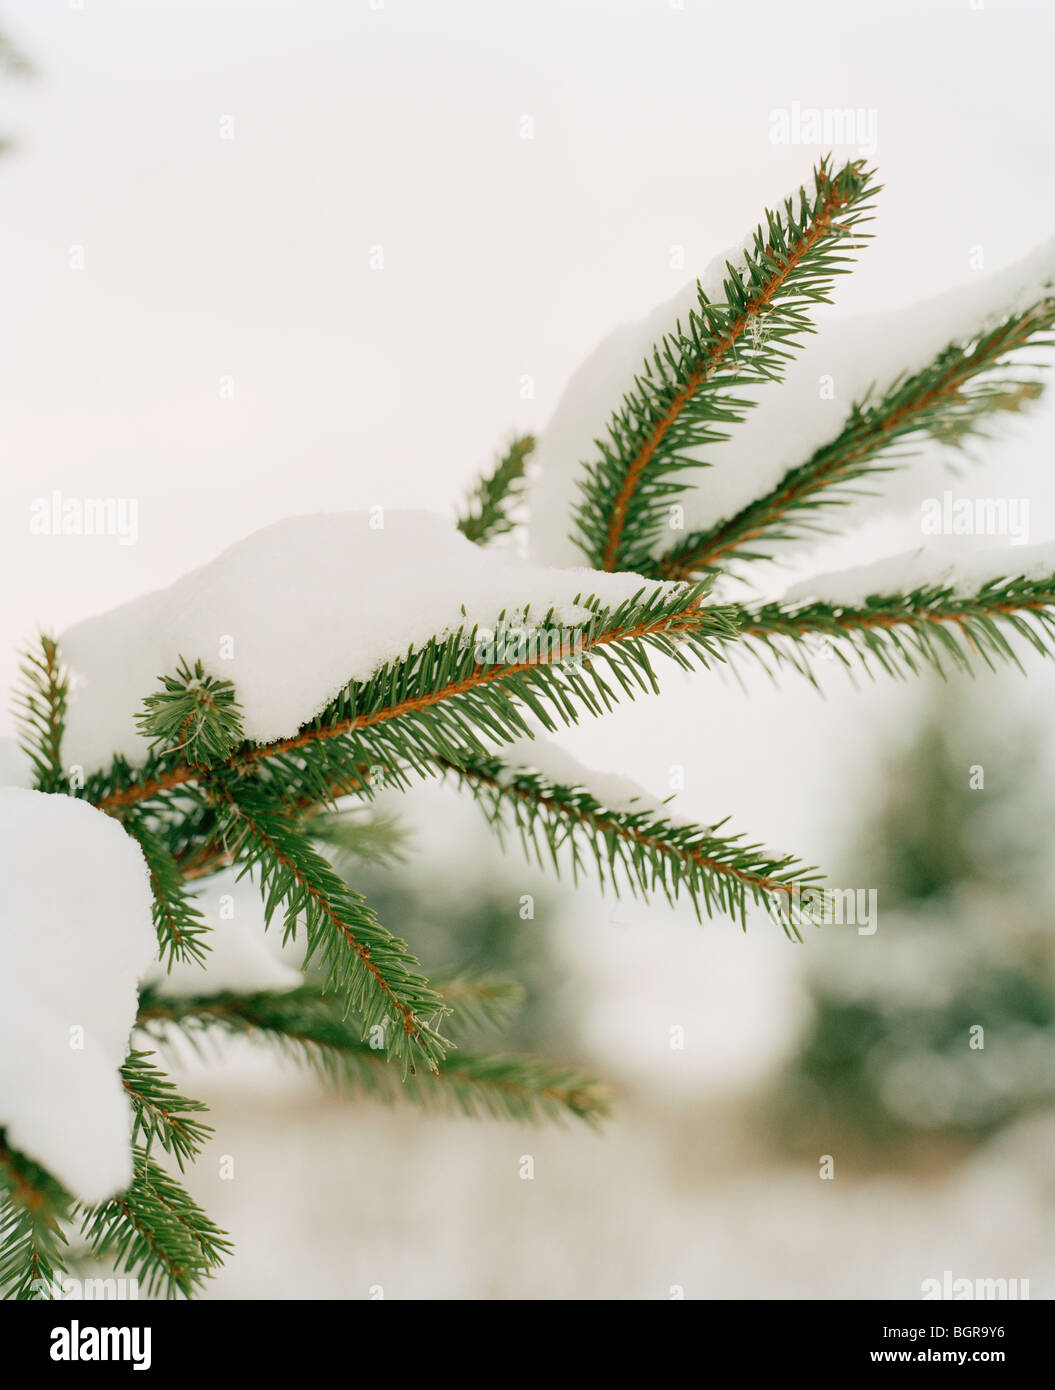 Branch of a spruce with snow - Stock Image